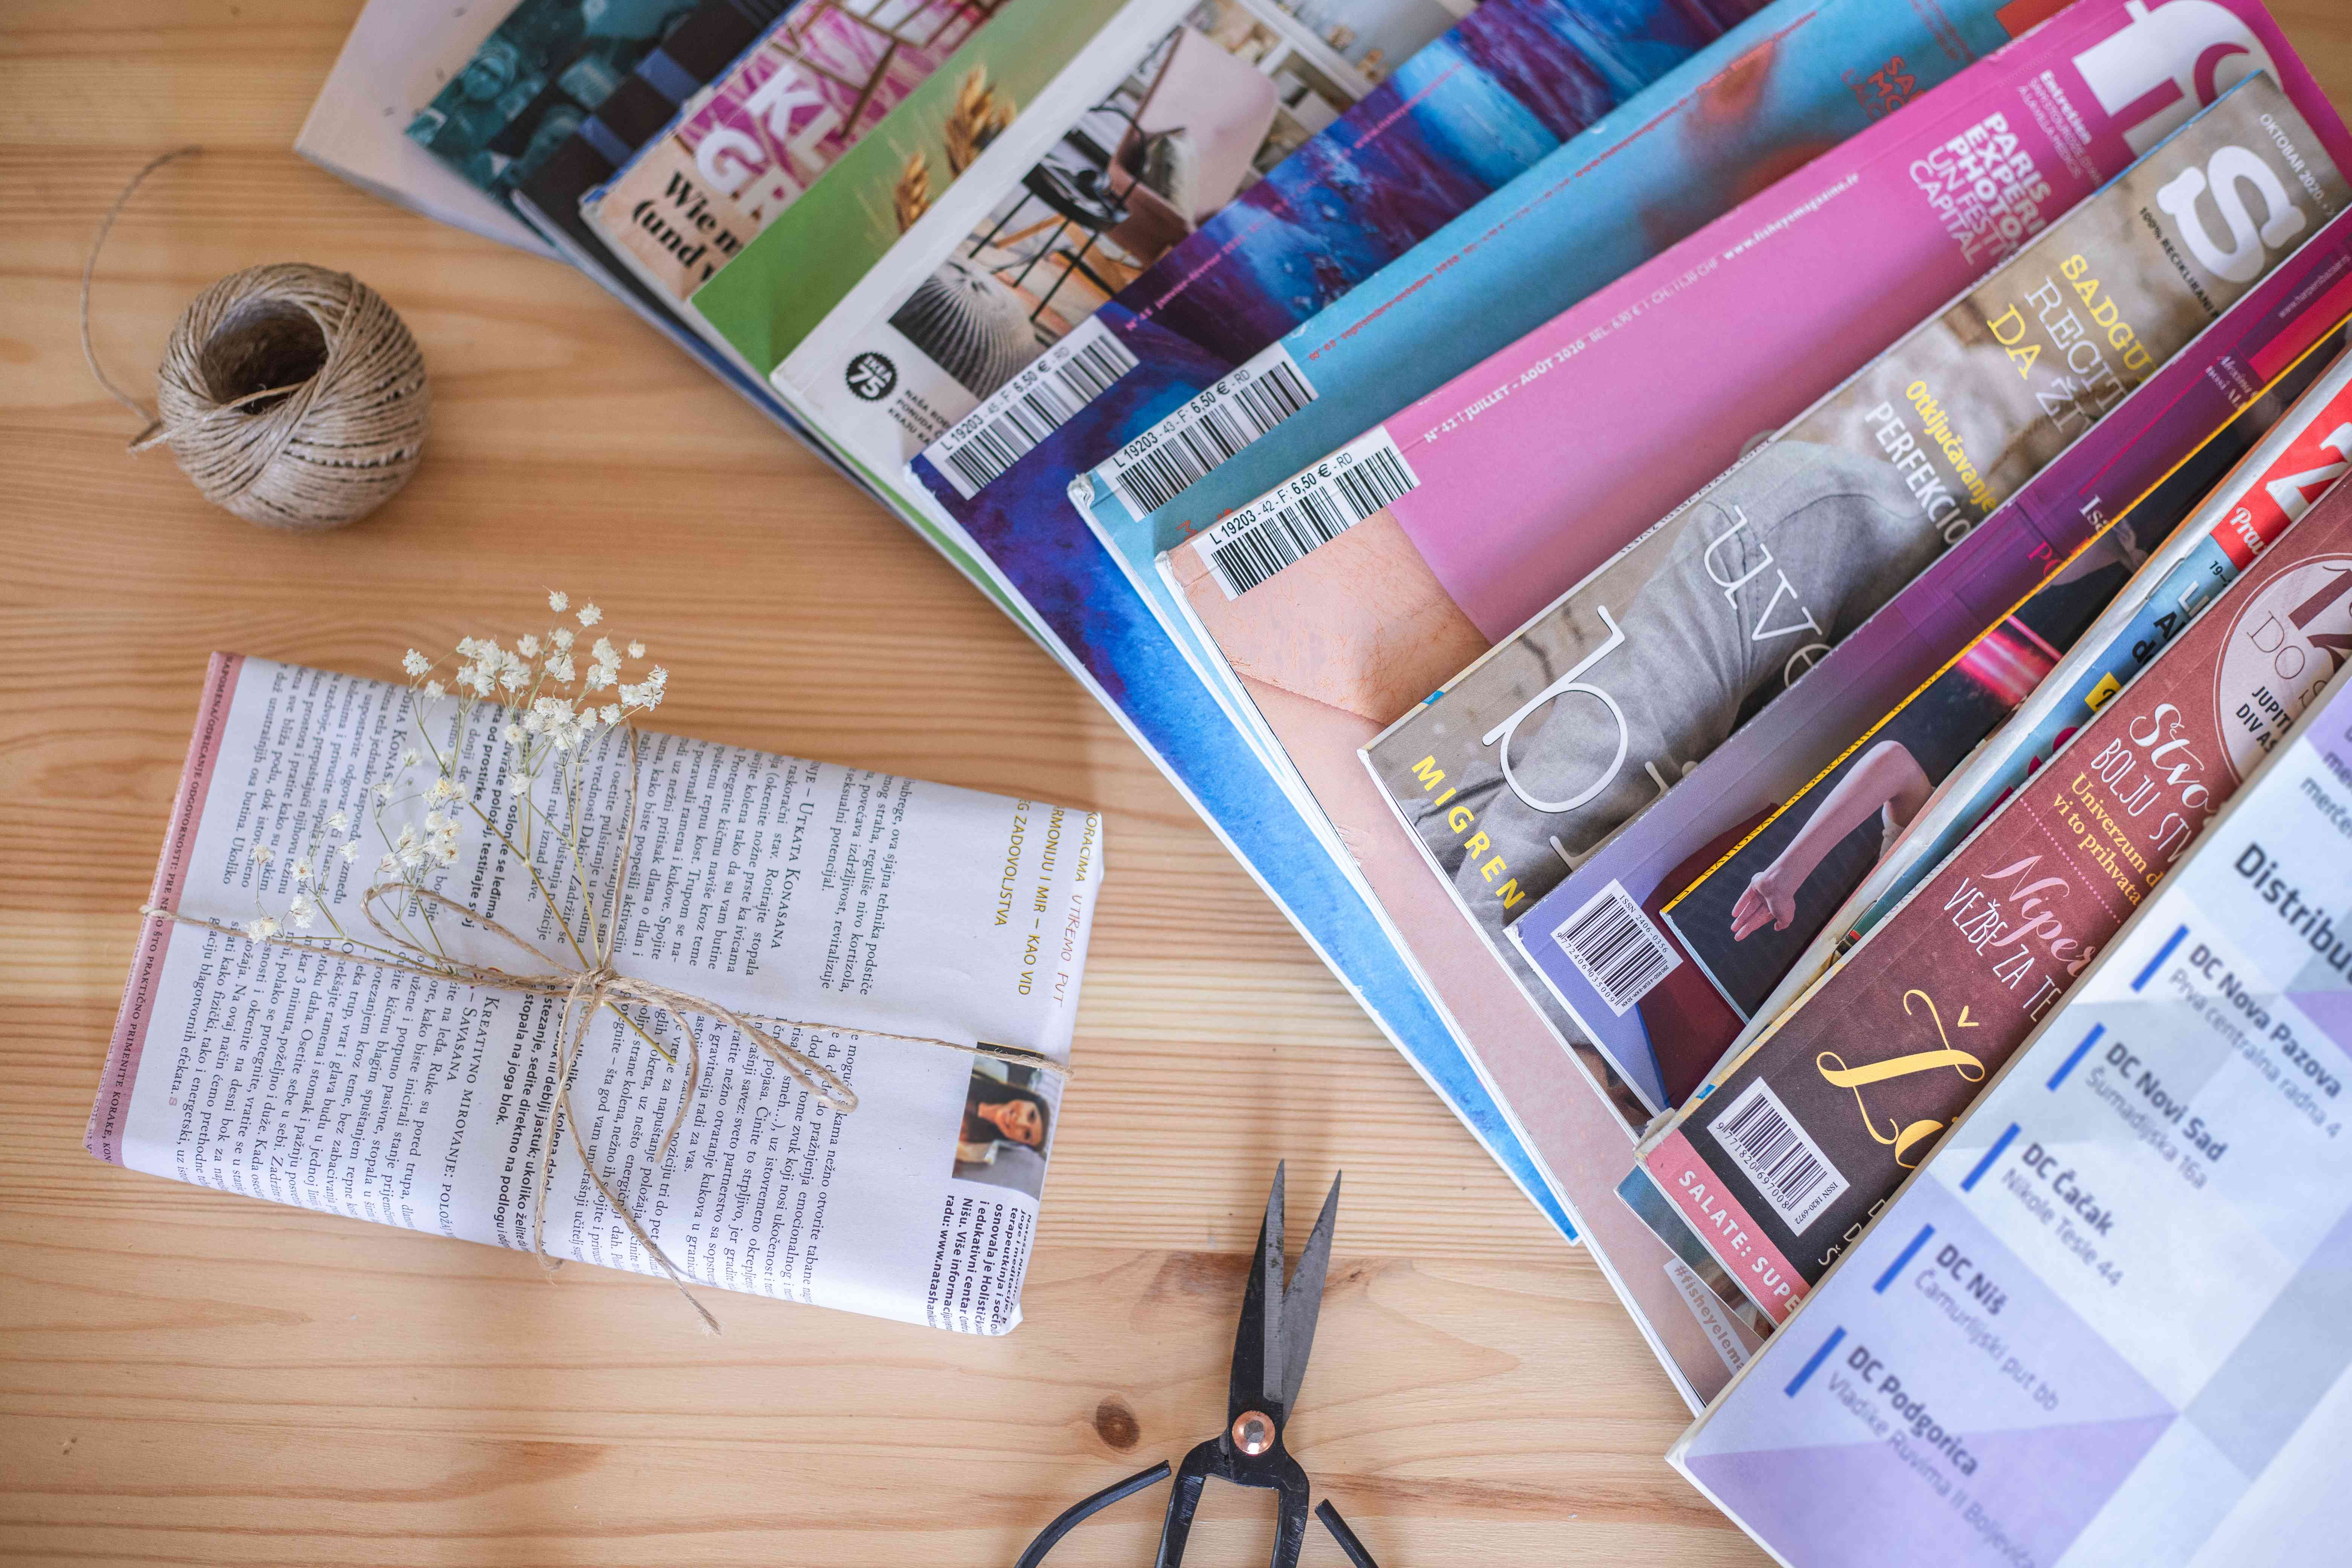 magazines scattered on table next to scissors, twine, and gift-wrapped present in upcycled paper